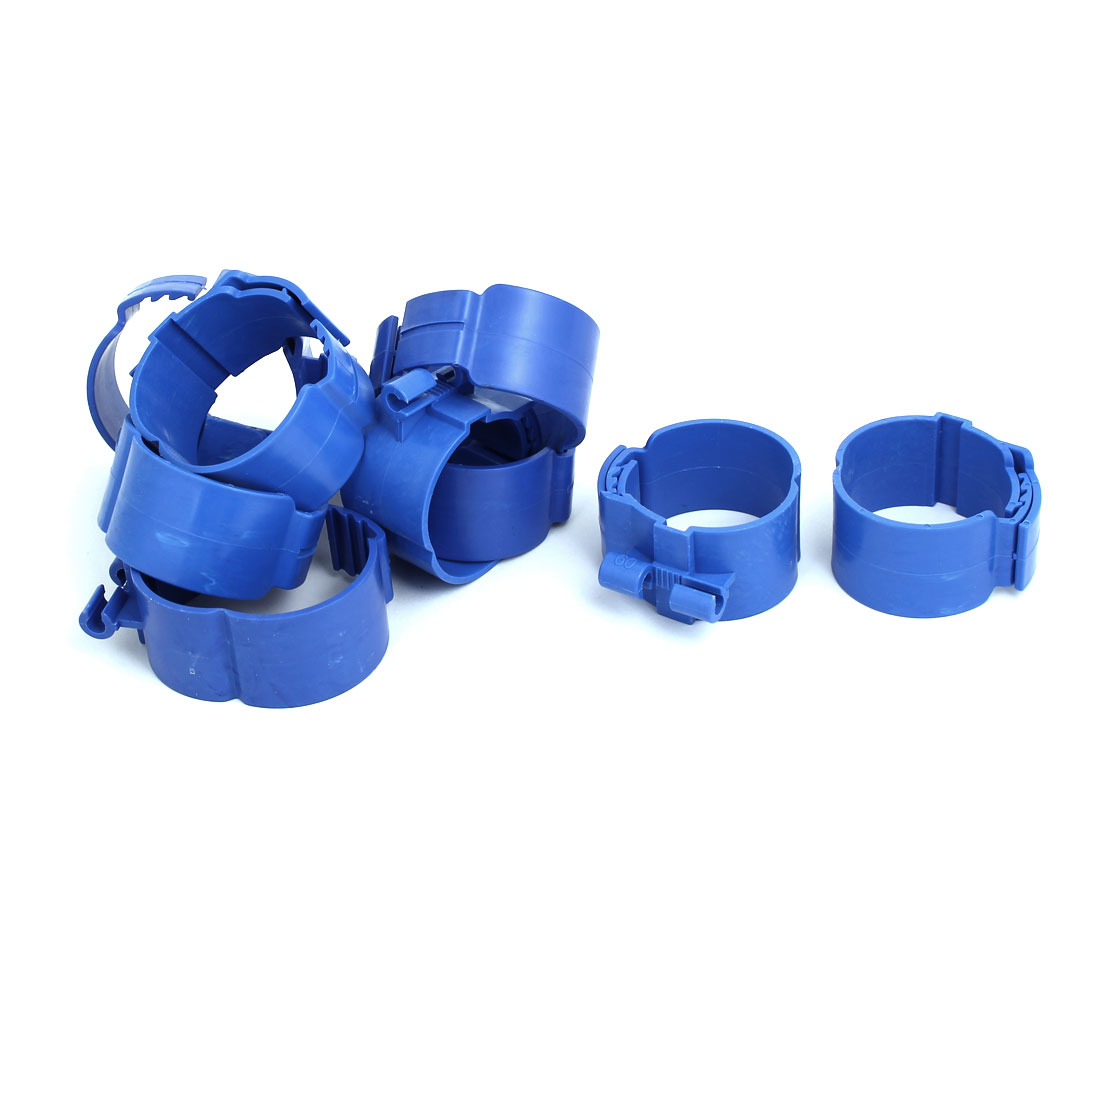 60mm Dia 38mm Width Central Air Conditioner Pipe Clip Clamp Blue 9pcs